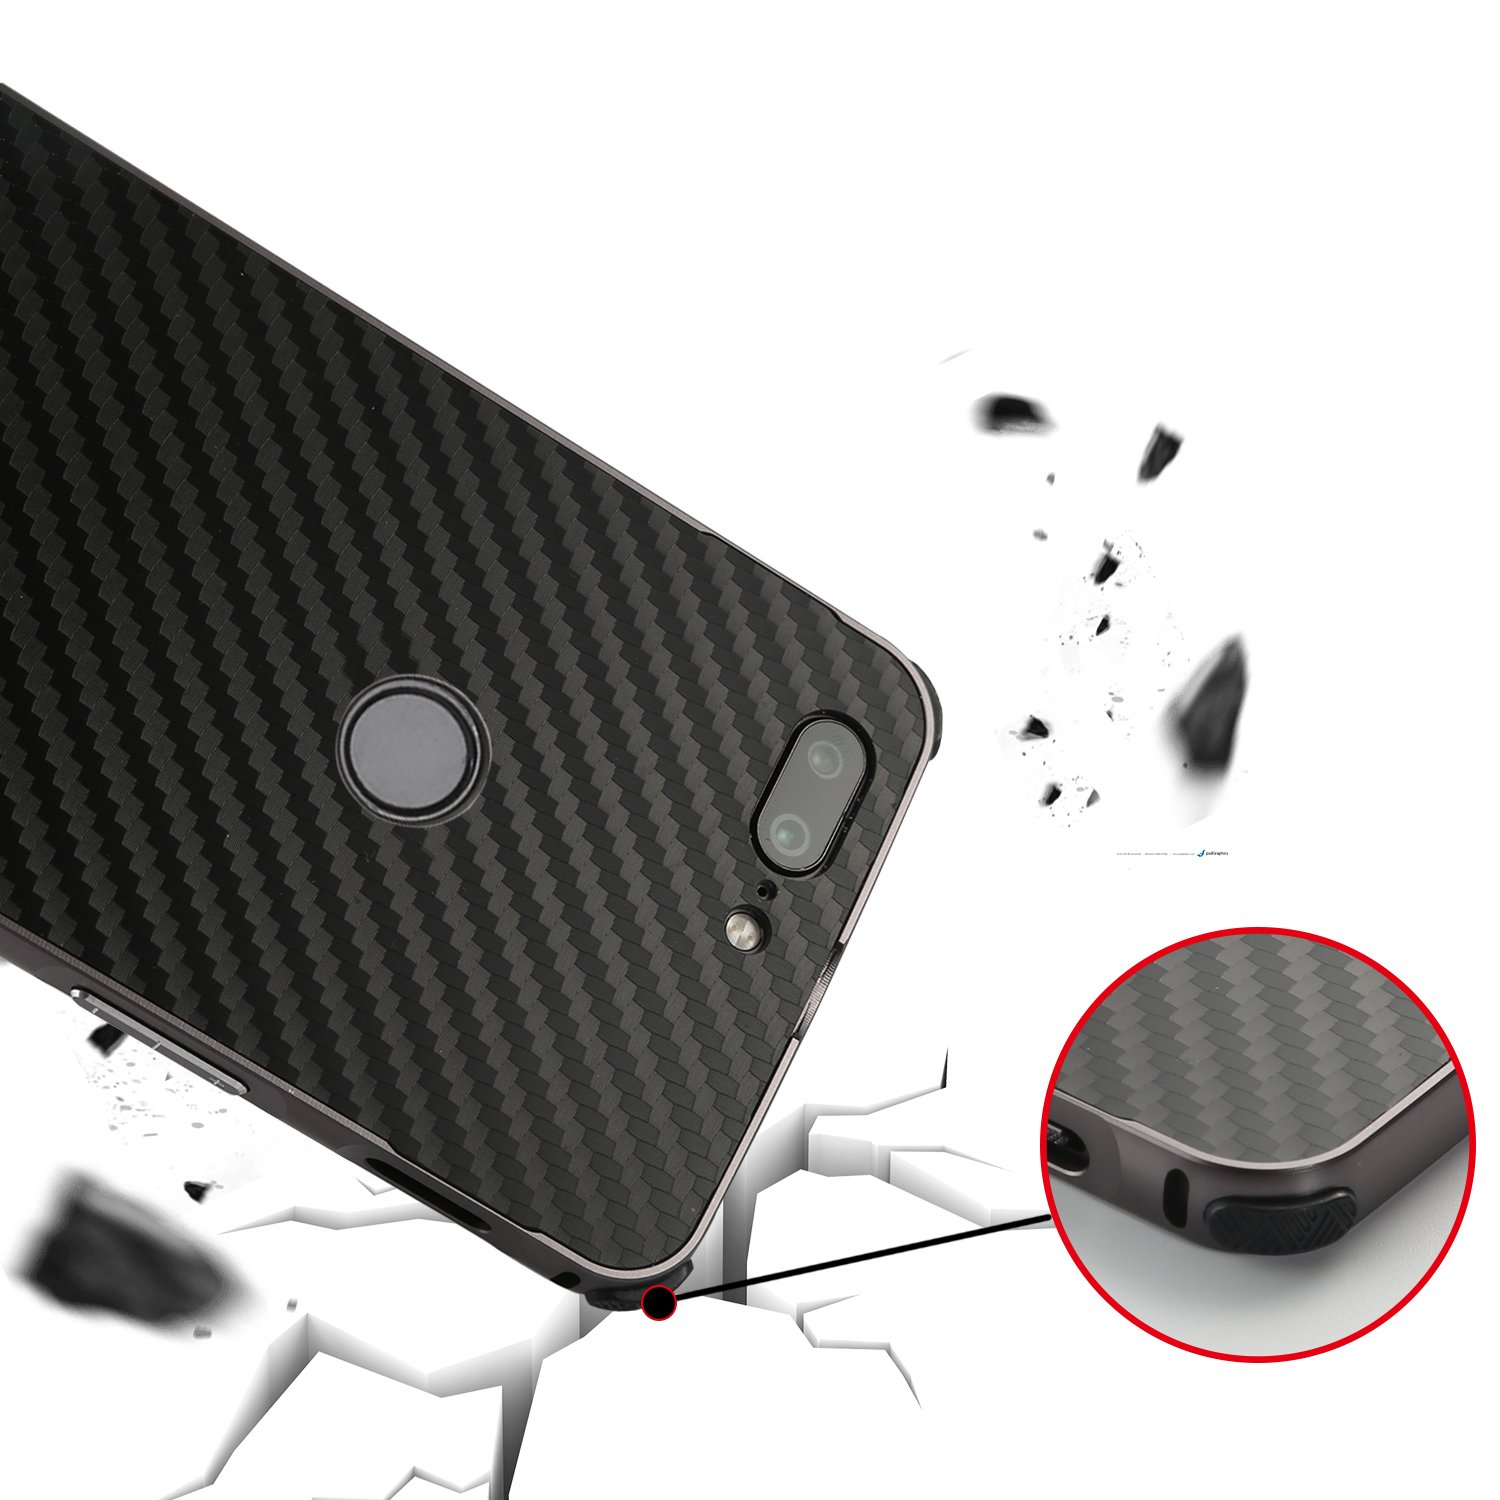 Oneplus 5T Case,DAMONDY Luxury Carbon Fiber Design Ultra thin Imitation Metal Brushed Premium Aluminum Shockproof Protective Bumper Hard Back Case Cover for OnePlus 5T (2017)-Gold by DAMONDY (Image #5)